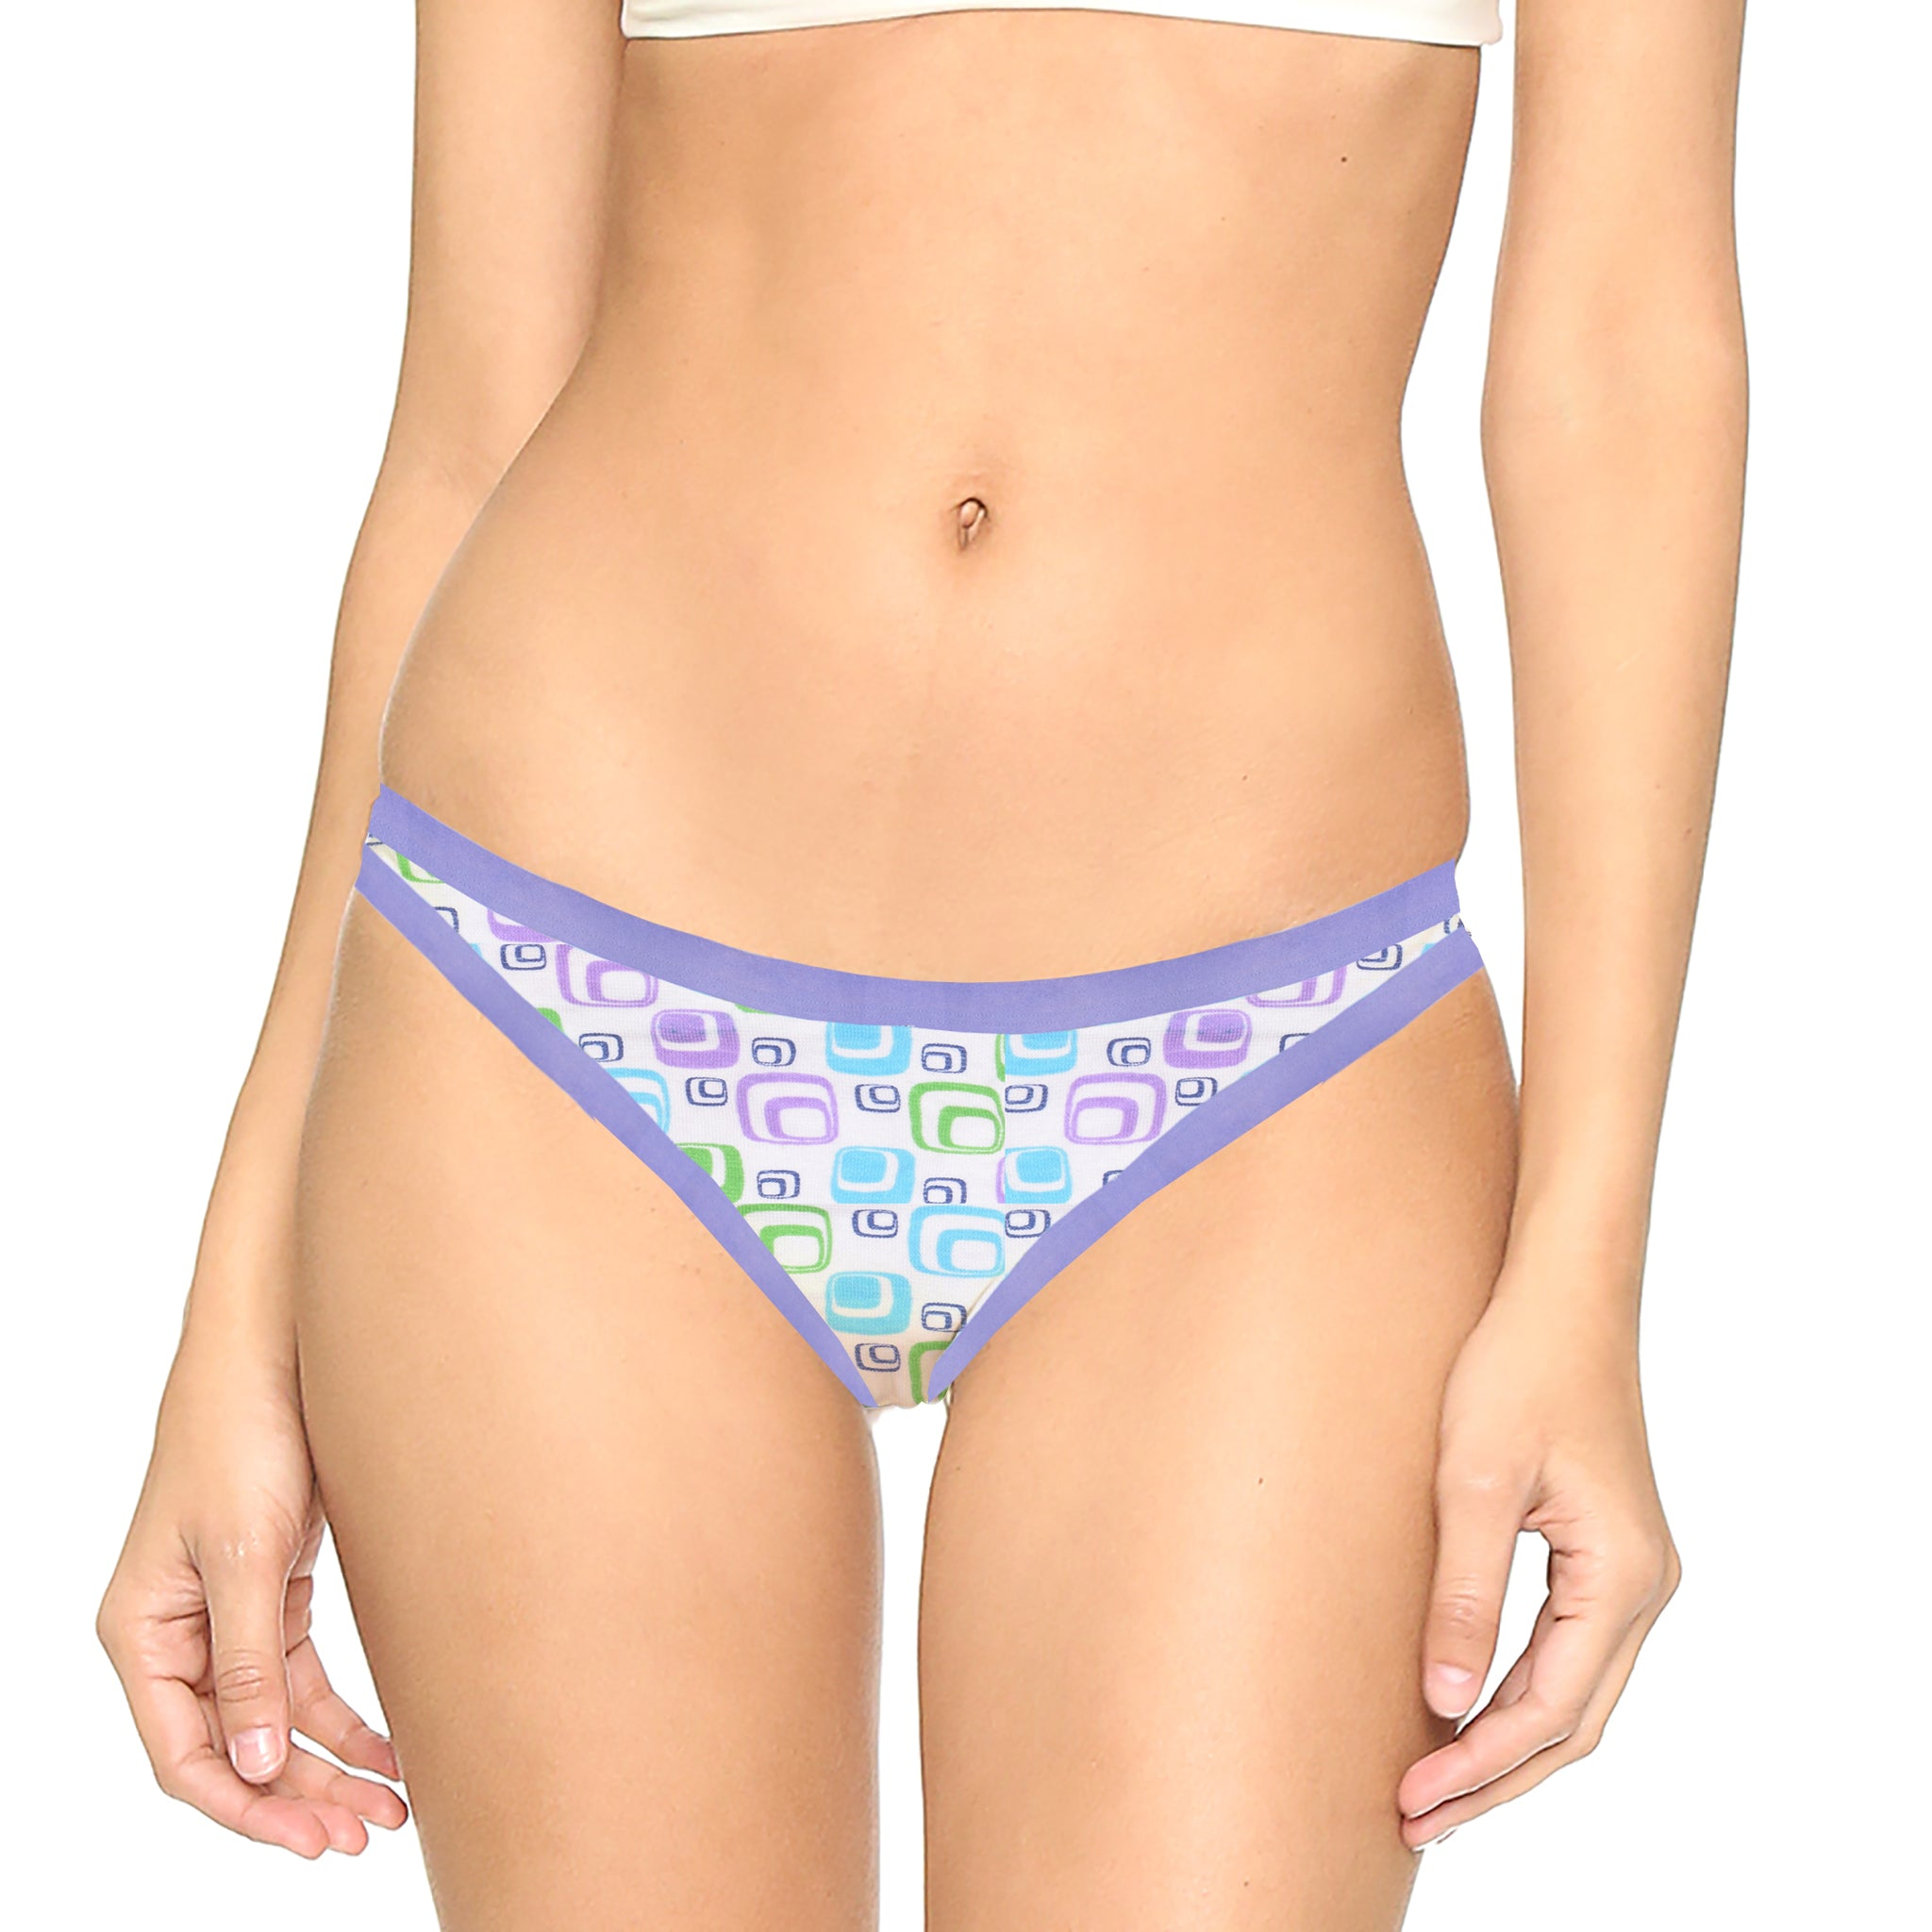 a29070988d1 FRUIT OF THE LOOM Essentials Underwear For Ladies-Allover Print-BE41735.jpg v 1517839599